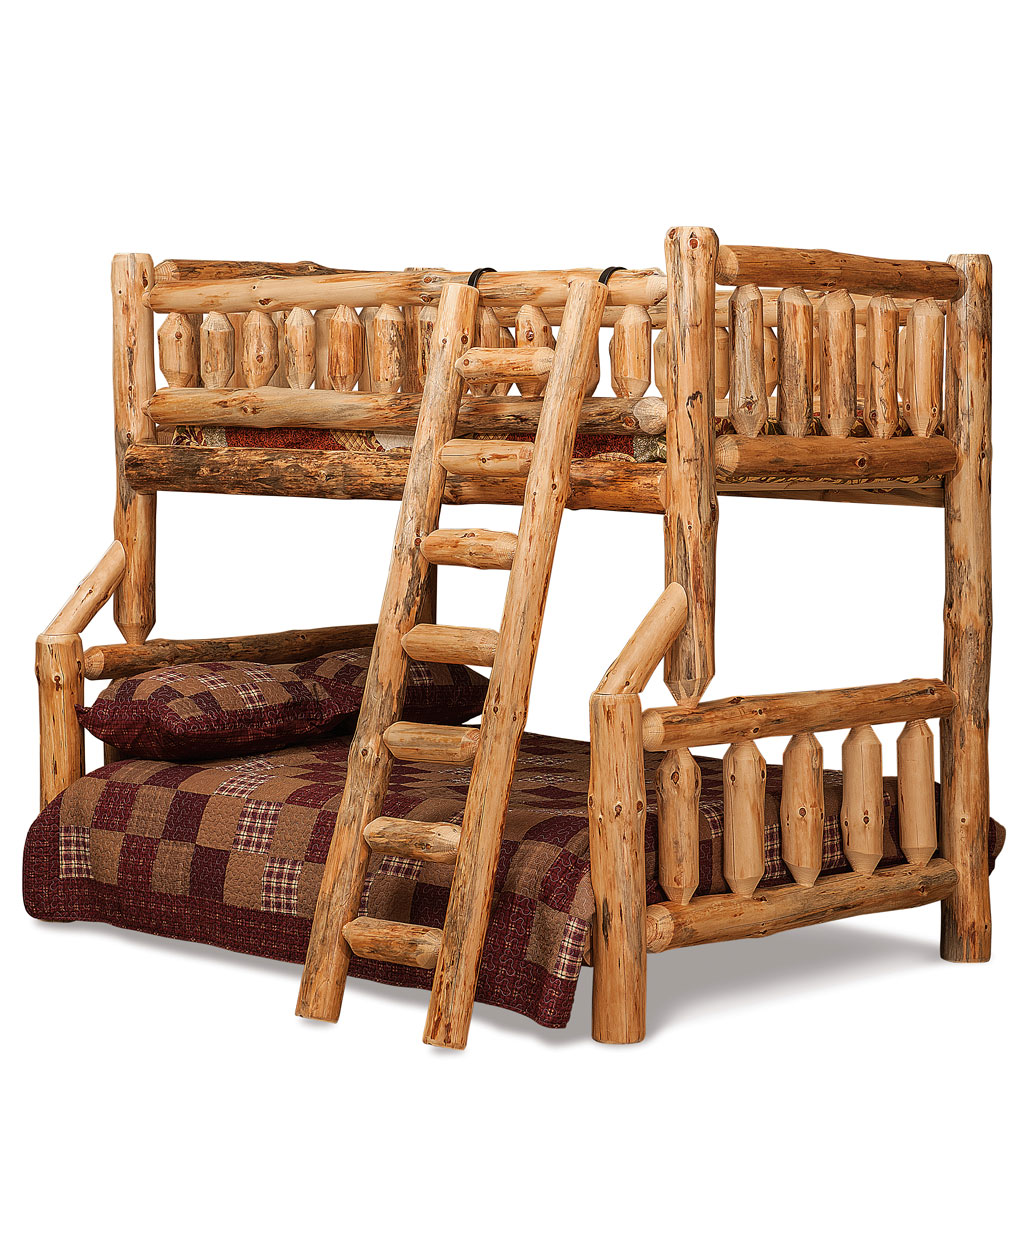 "Be the first to review ""Log Bunk Beds"" Cancel reply"